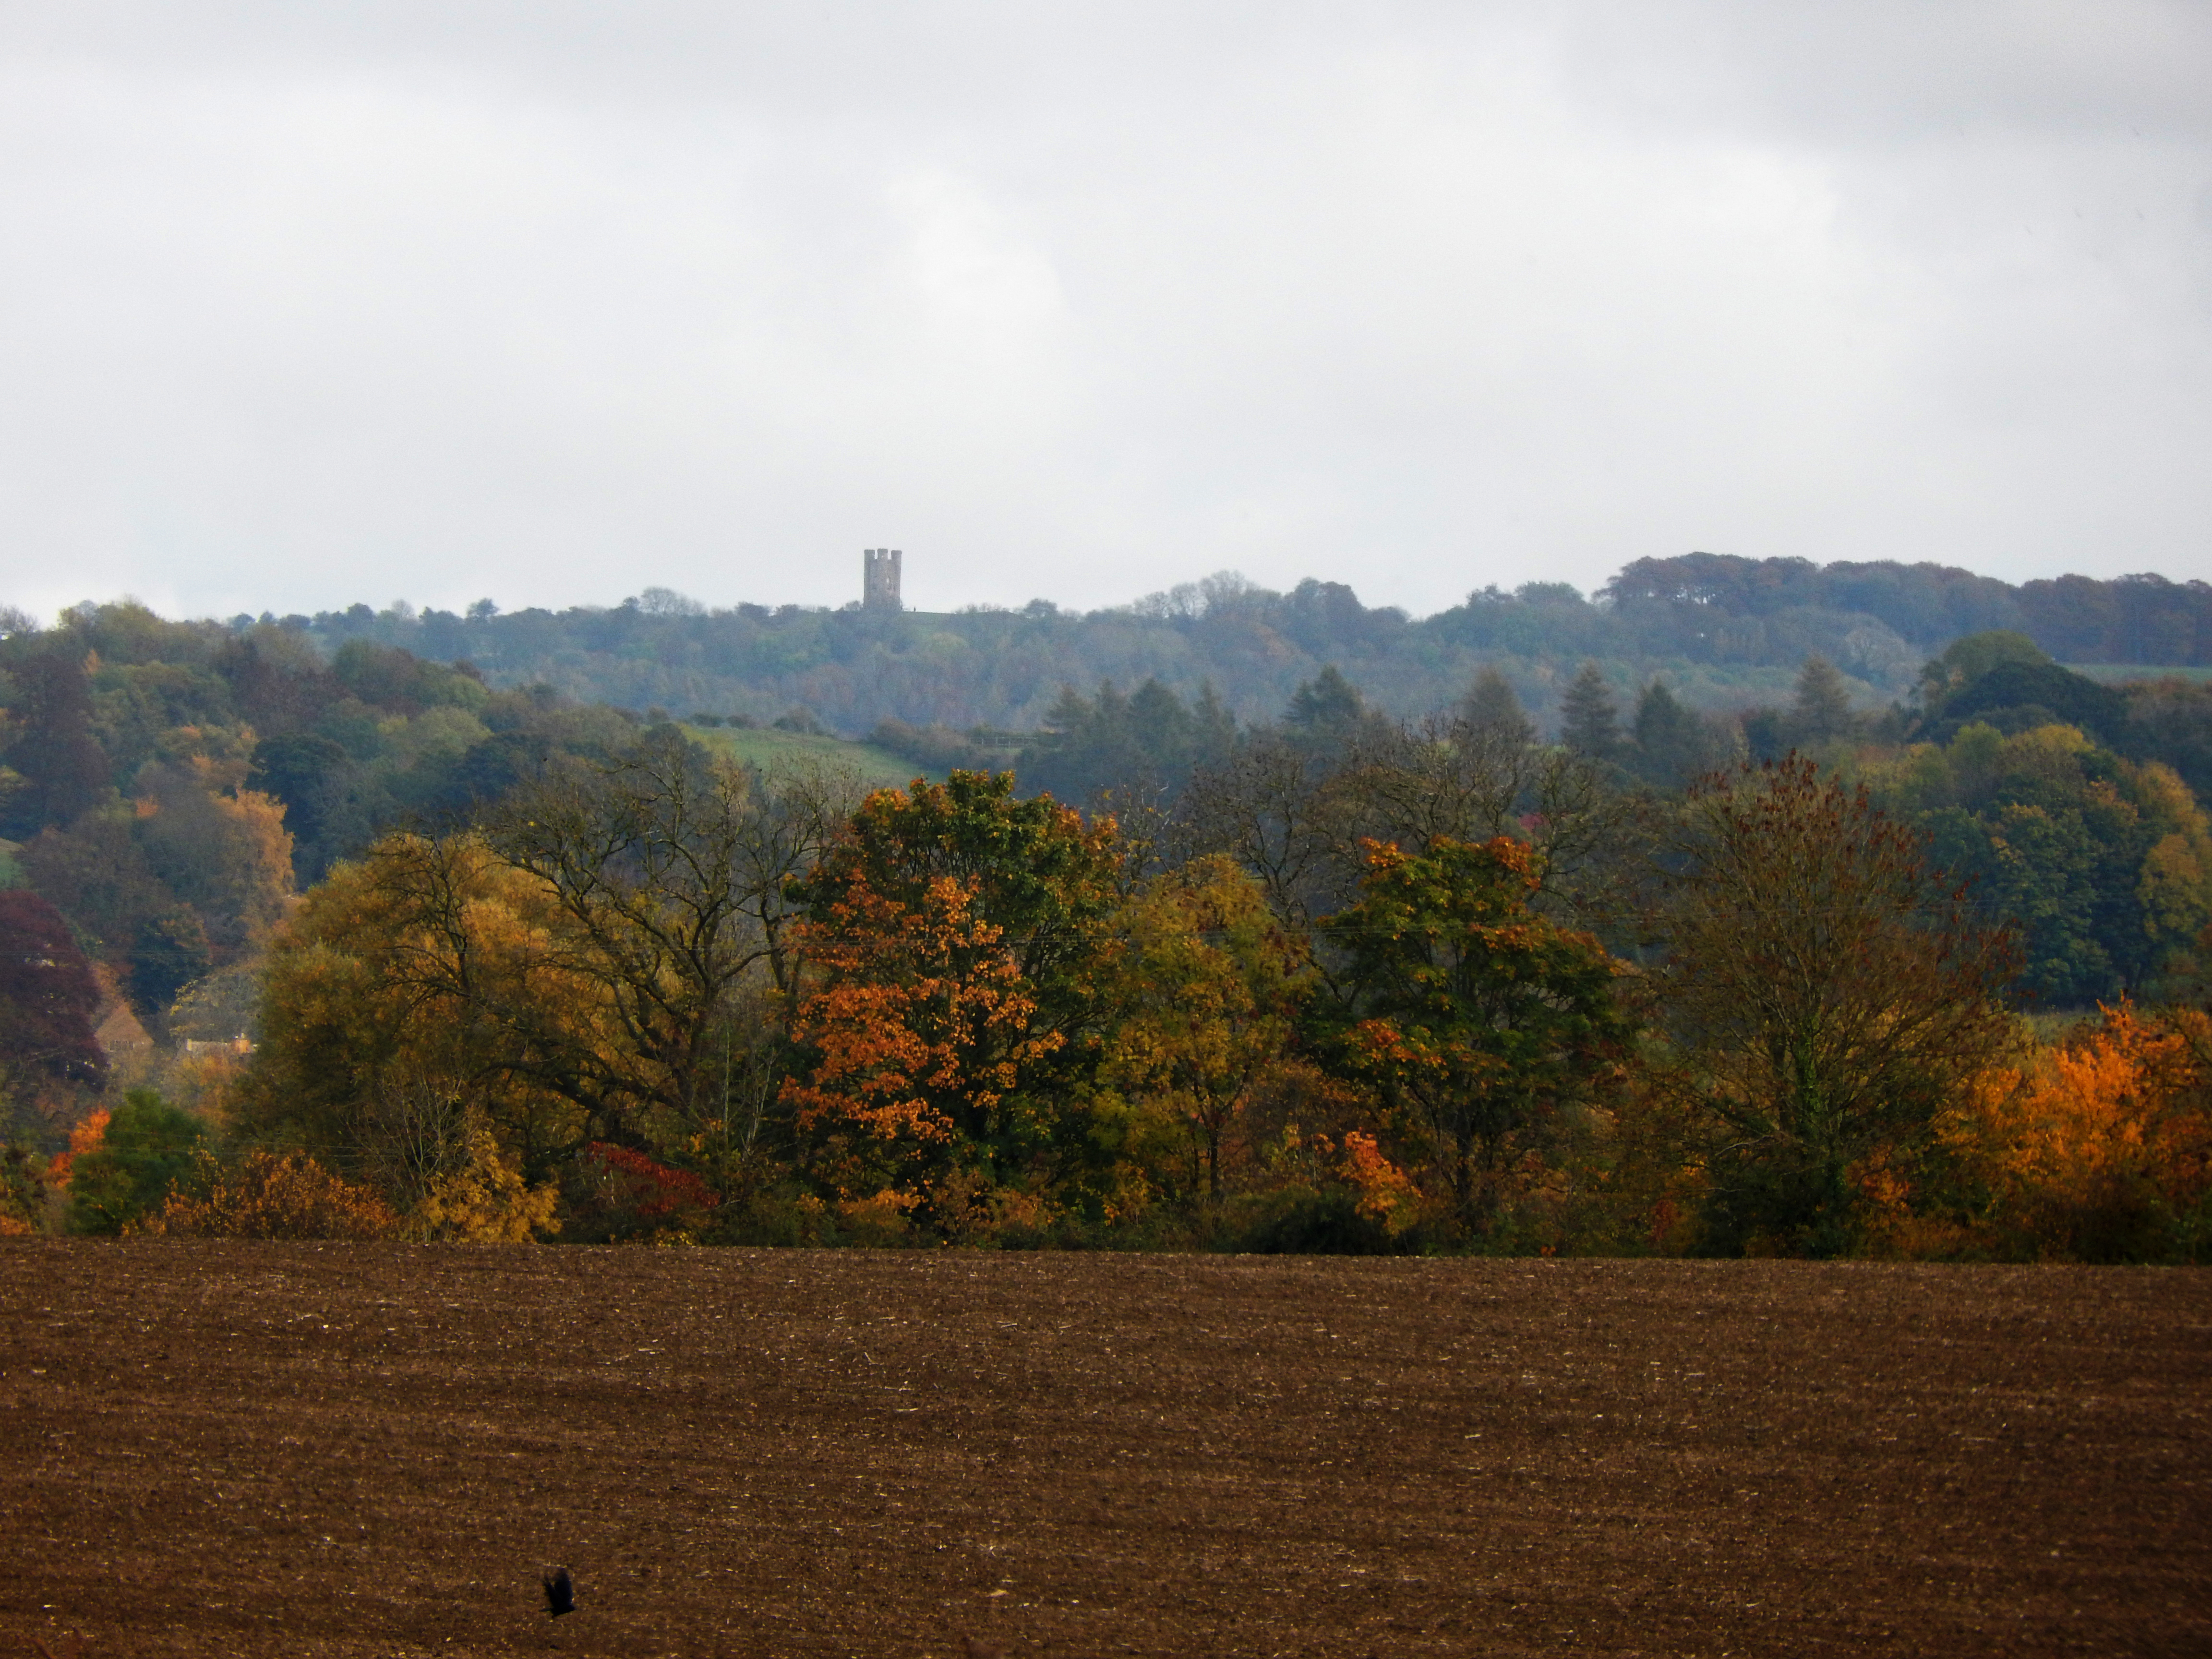 Gloucestershire Warwickshire Steam Railway - View of Broadway Tower - This Steam Train Stops at Hogwarts...Right!?